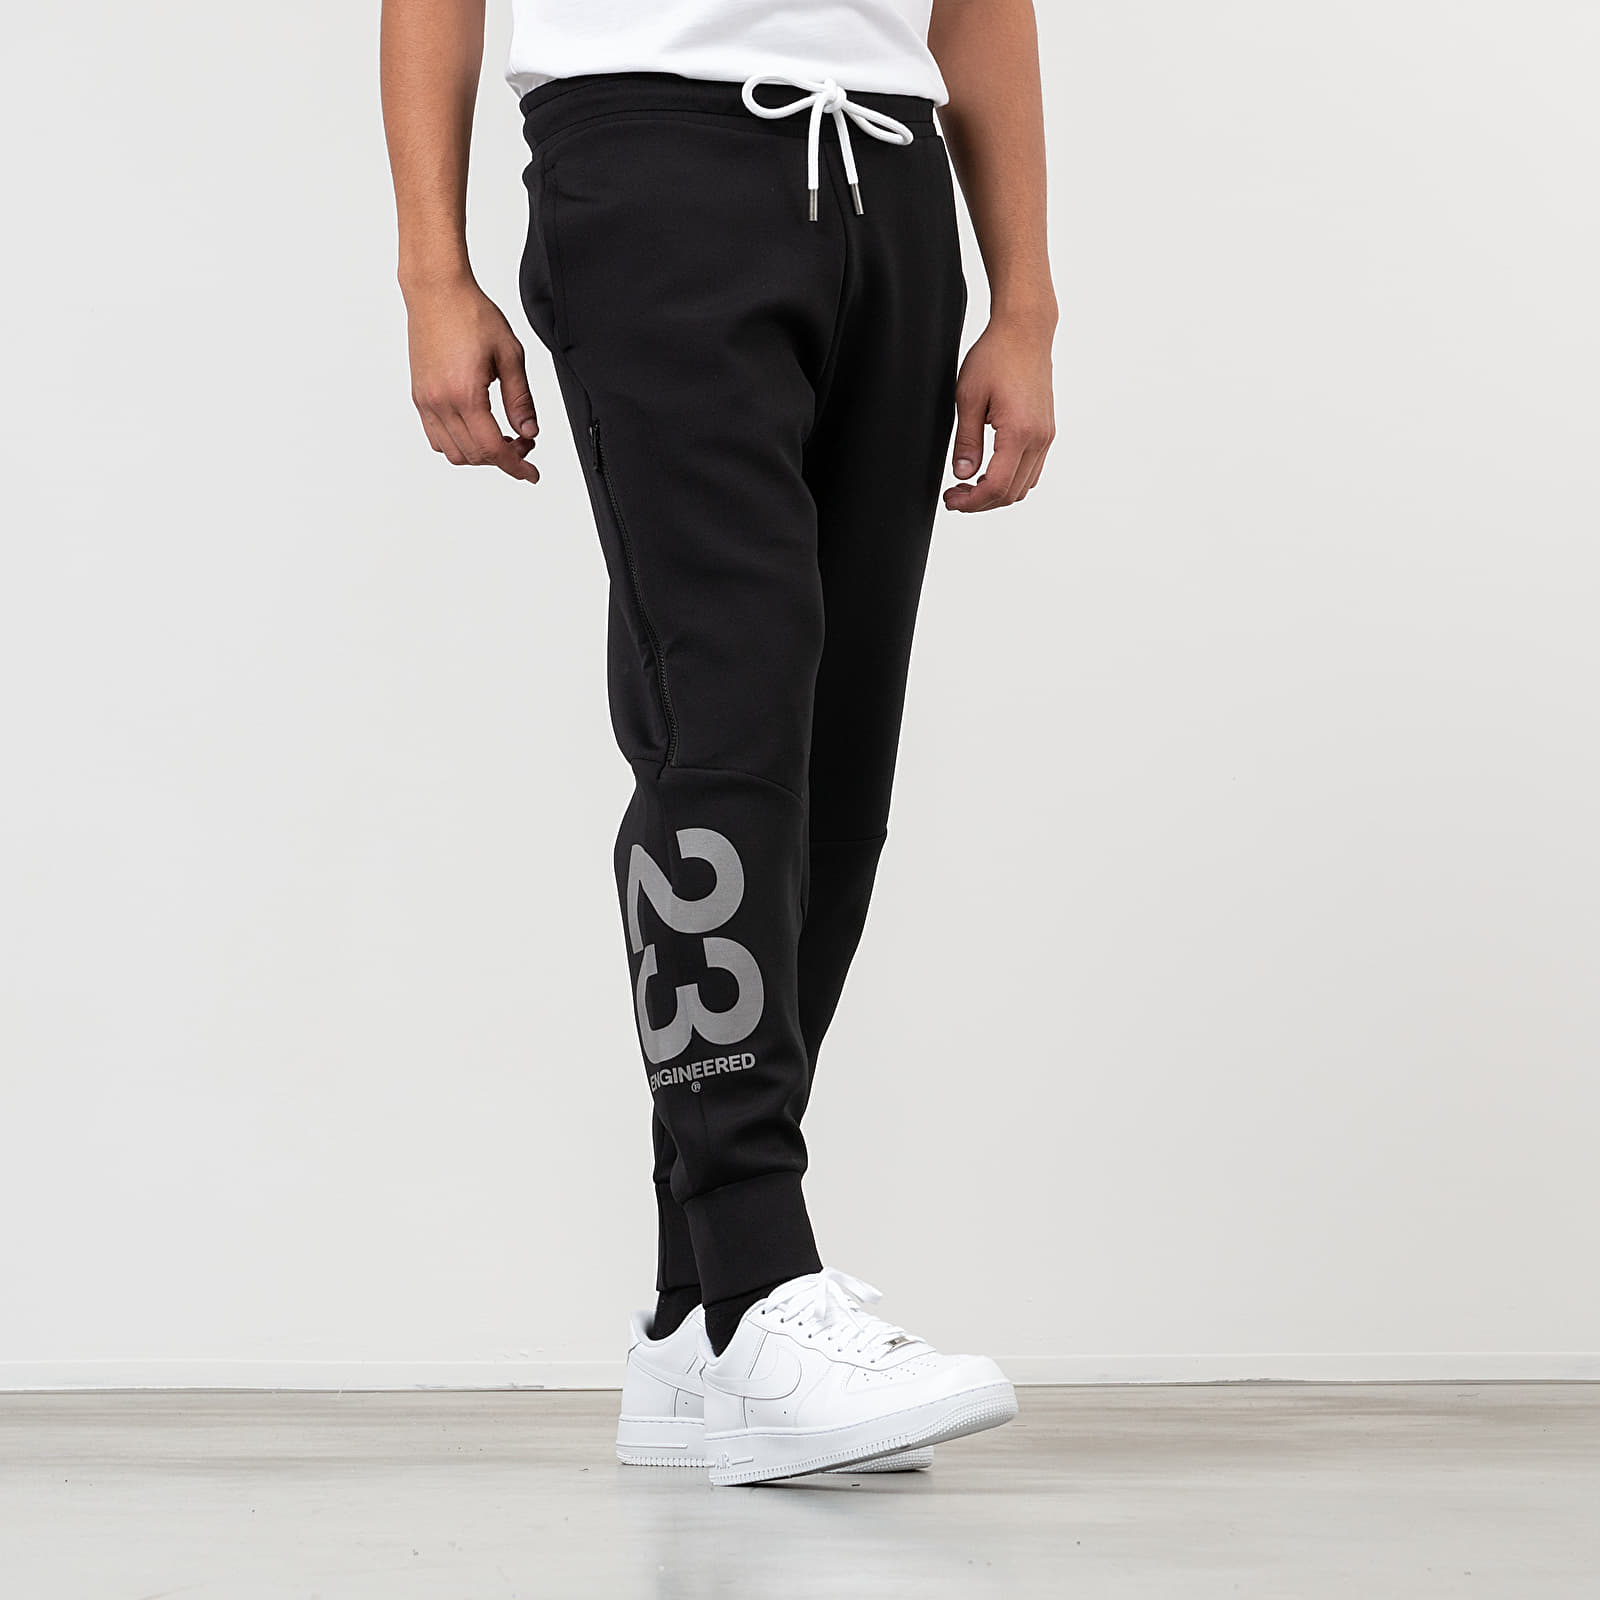 Jordan 23 Engineered Fleece Pants